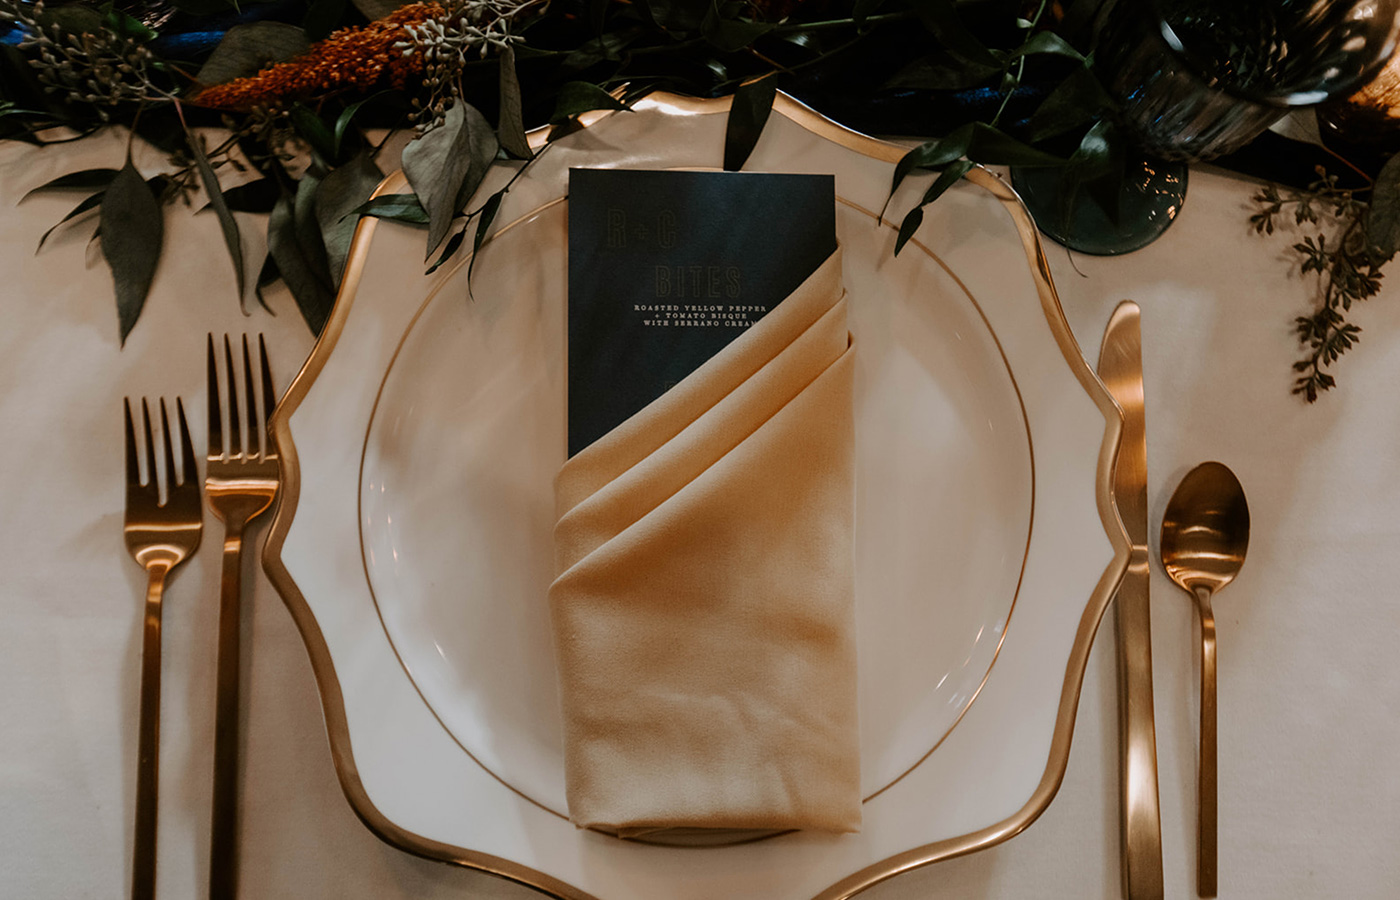 Revolution-Paper-Co-Luxury-Wedding-Stationery-Modern-Mustard-Collection-Menu-photo-by-Amanda-Leise-Photography